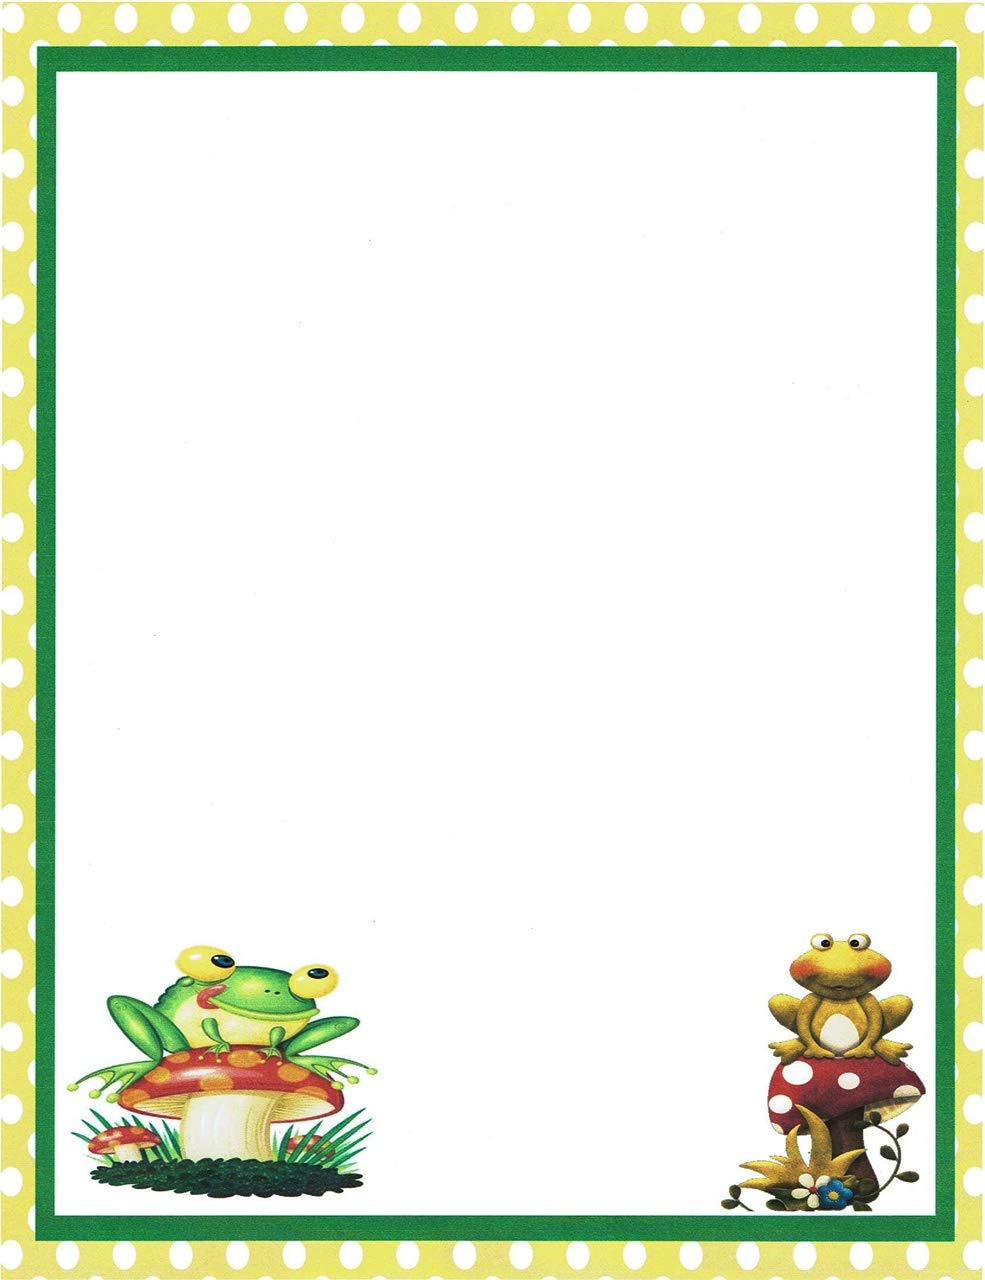 Amazon Com Frog Stationery Printer Paper 26 Sheets Health Household